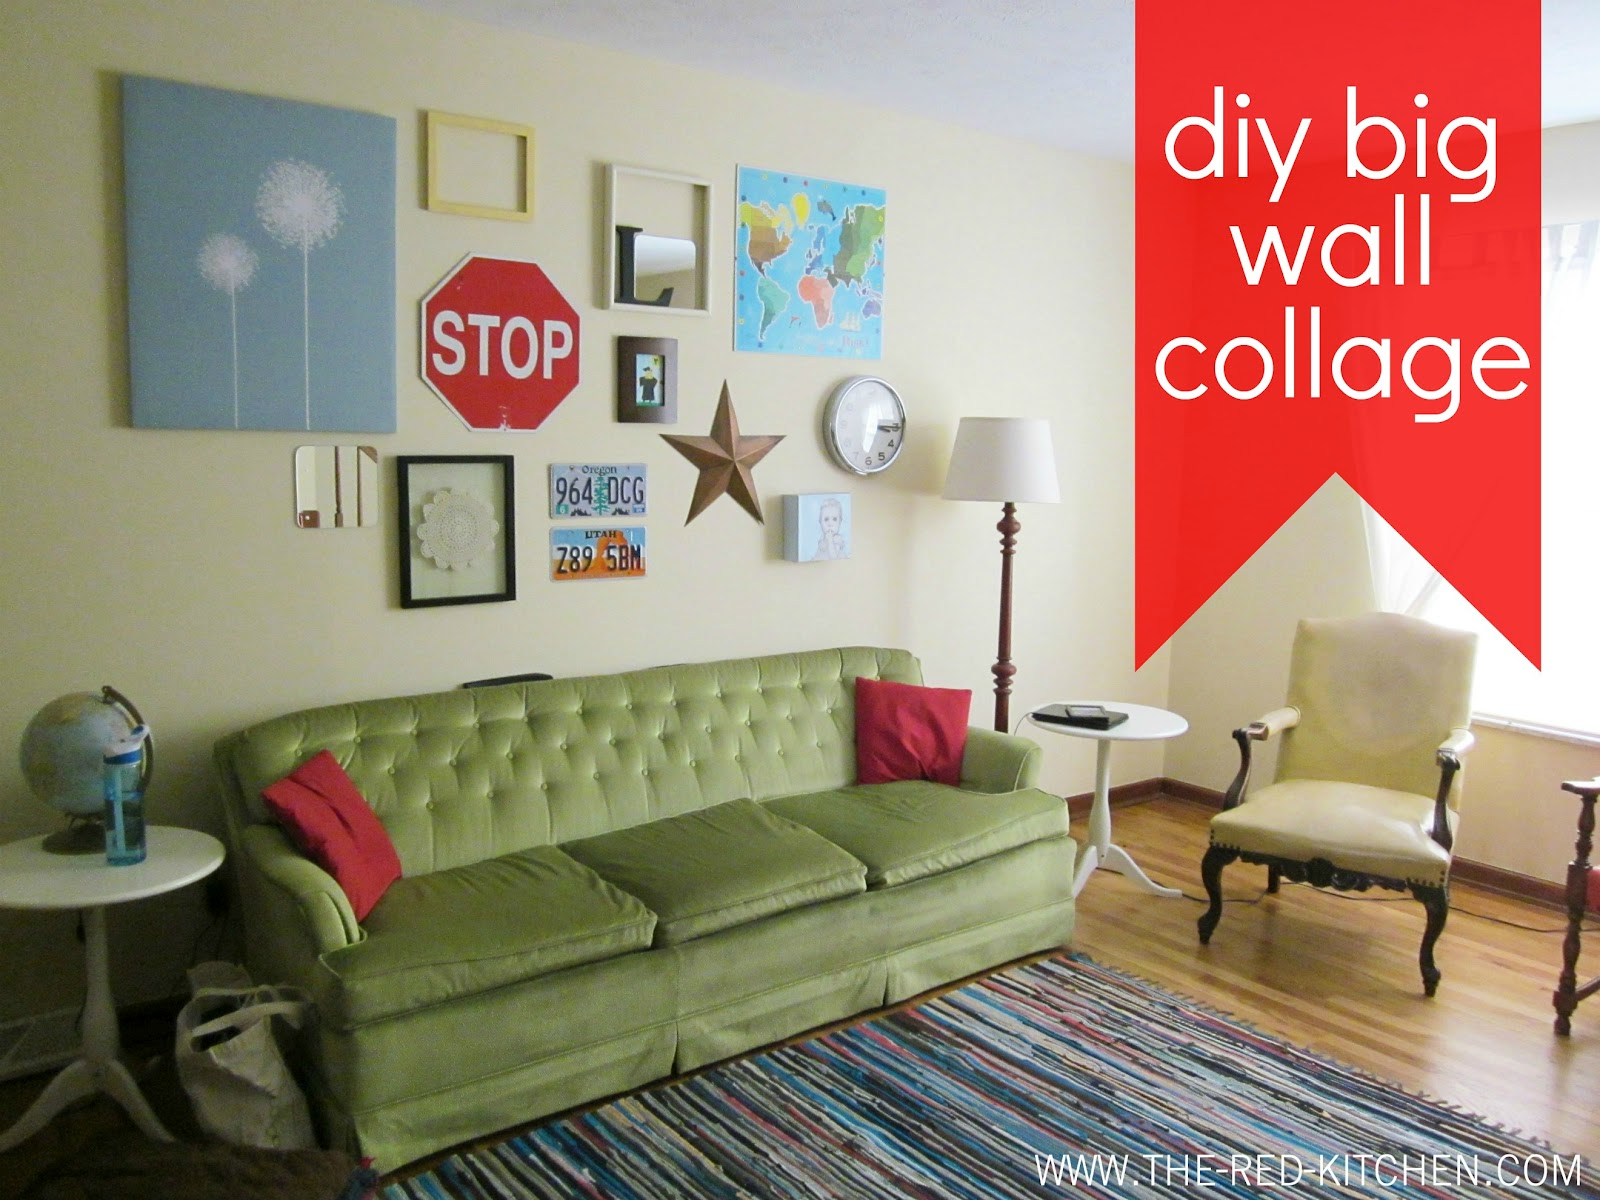 the red kitchen: DIY Big Wall Collage